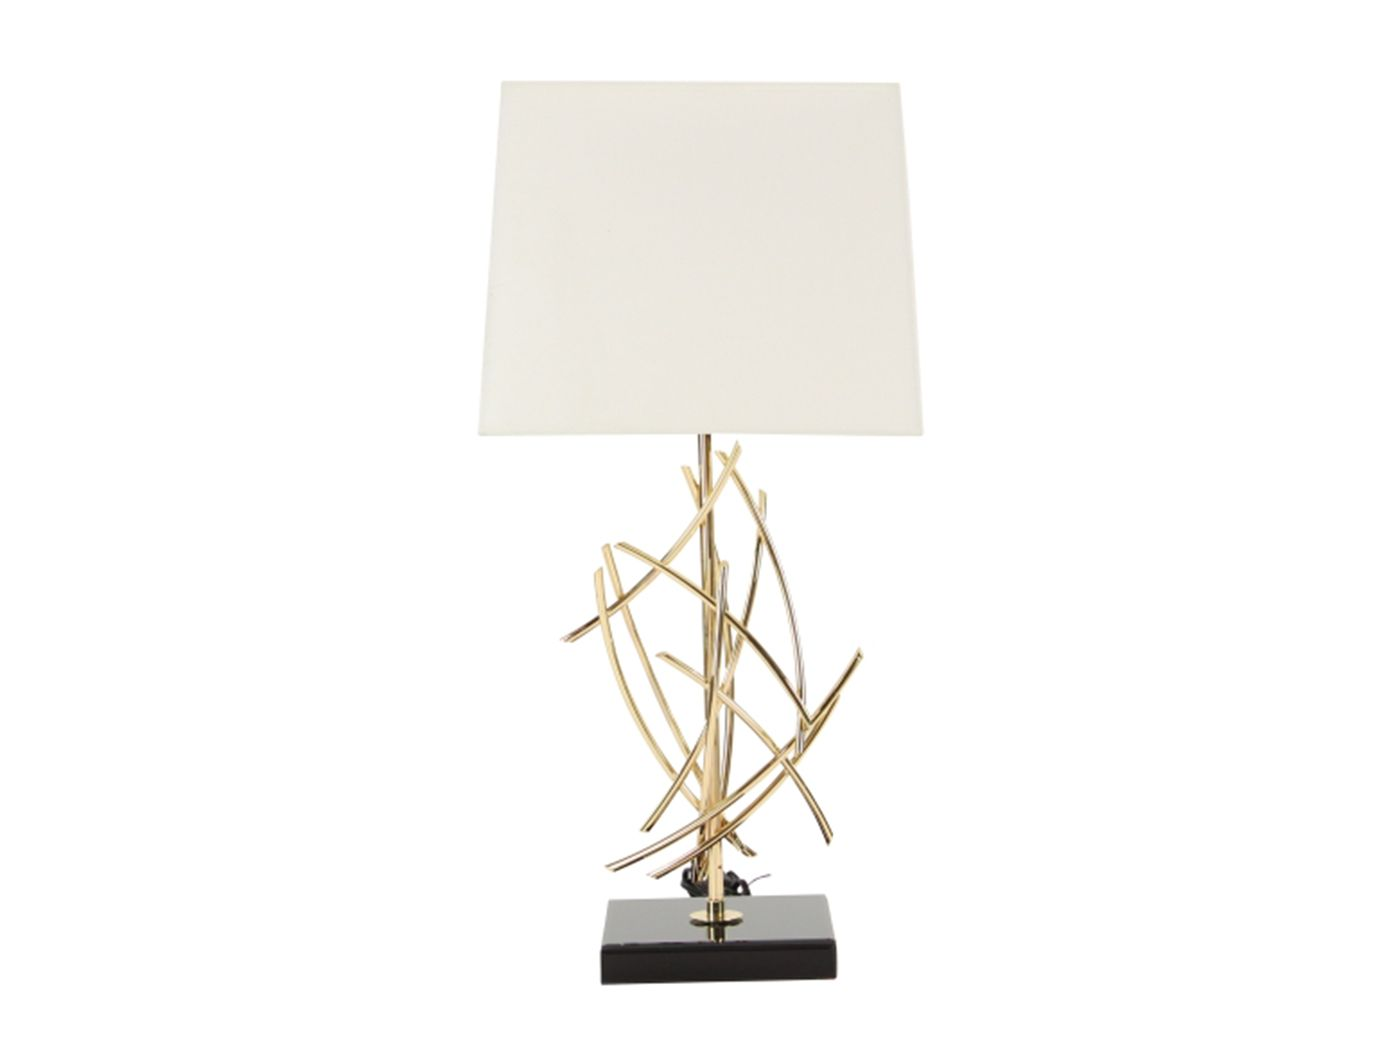 Use This Abstract Table Lamp To Create A Modern Touch We Love